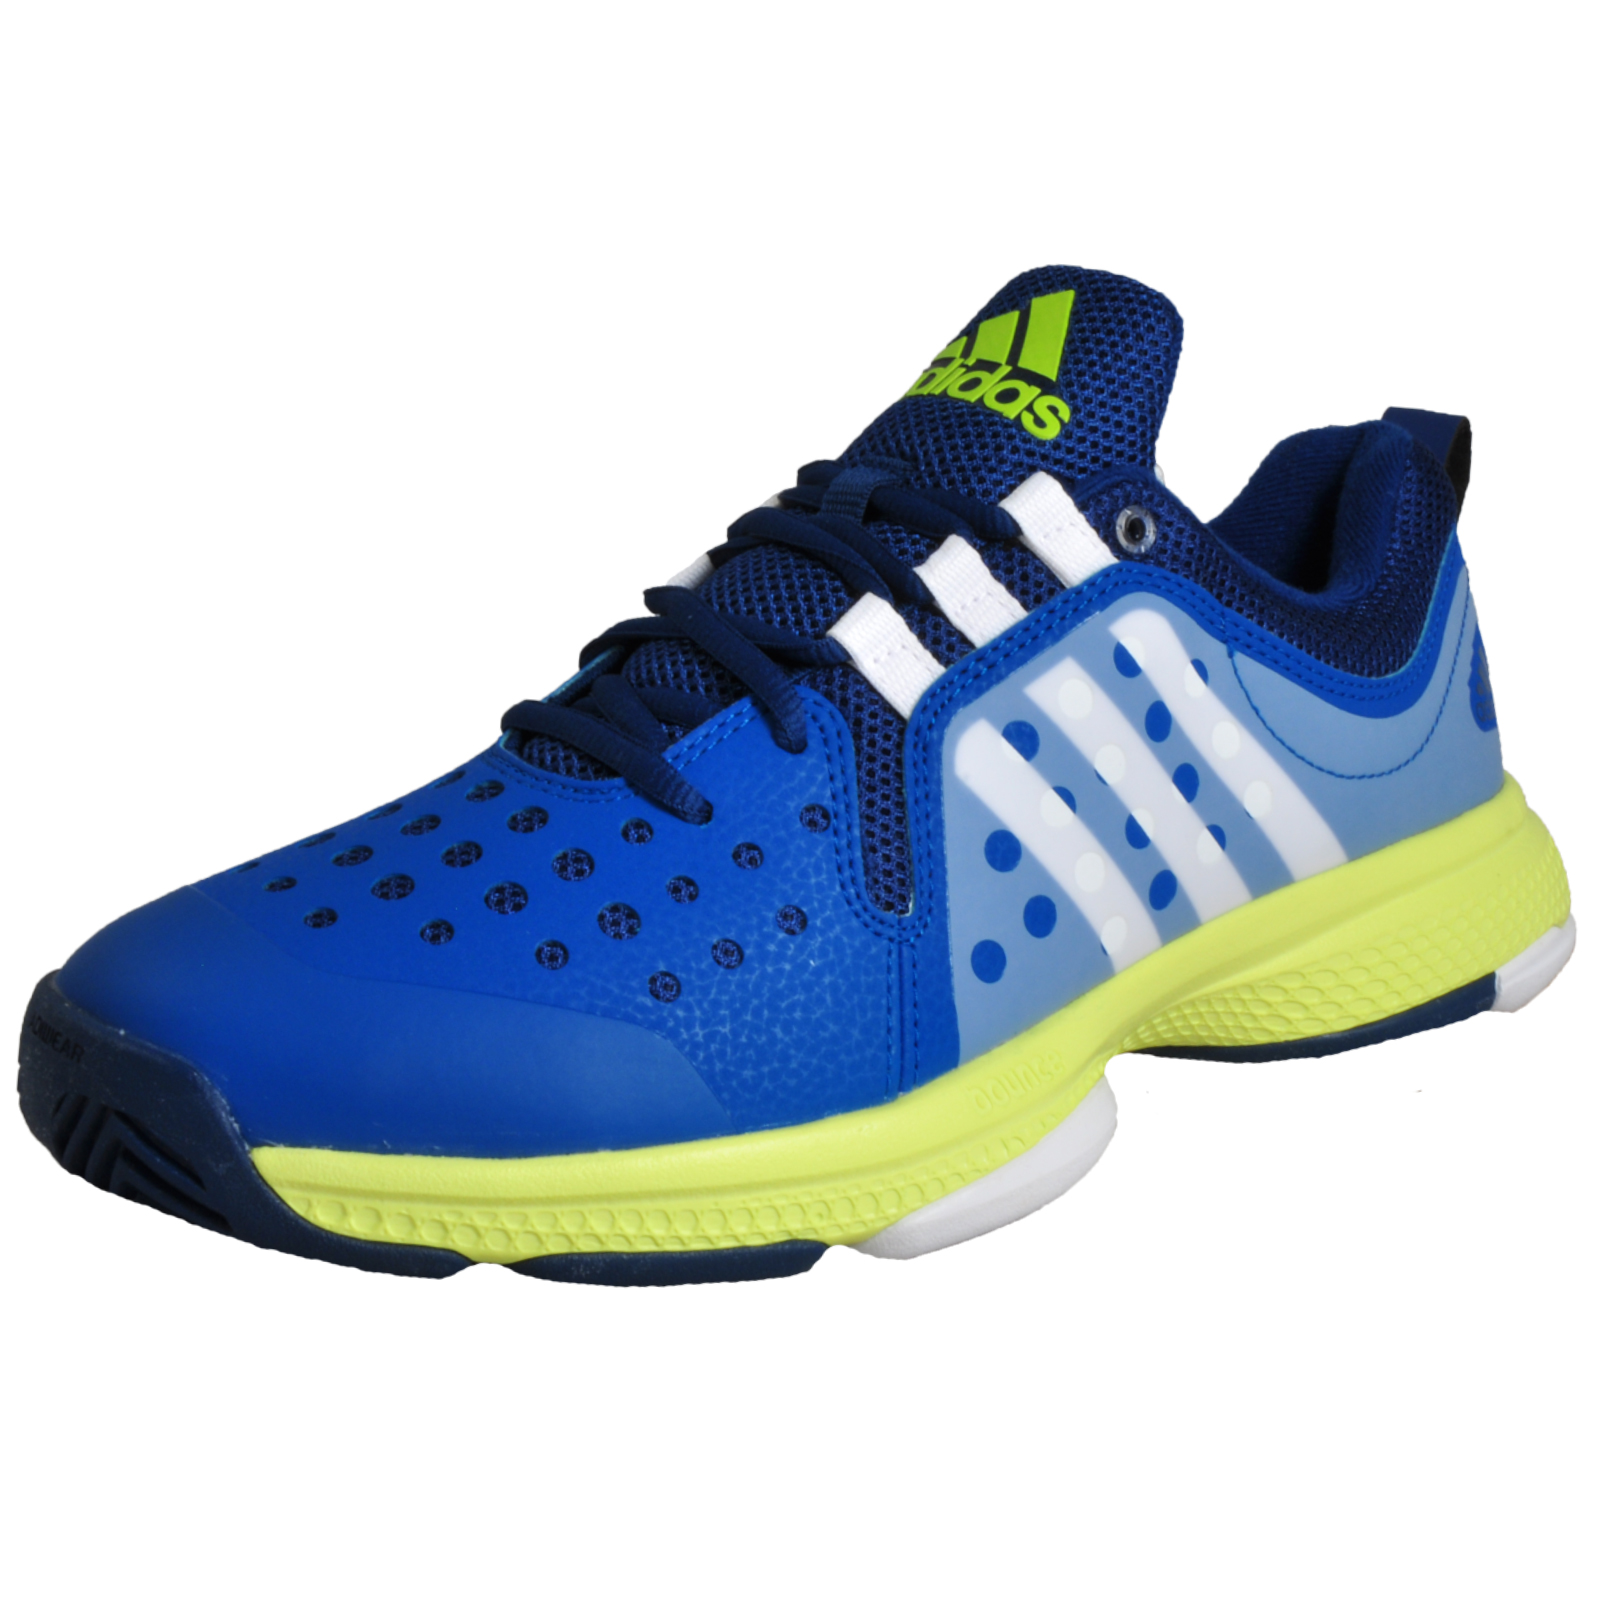 eb2c08ca3 Details about Adidas Barricade Classic Bounce Men s Tennis Court Fitness  Trainers Blue